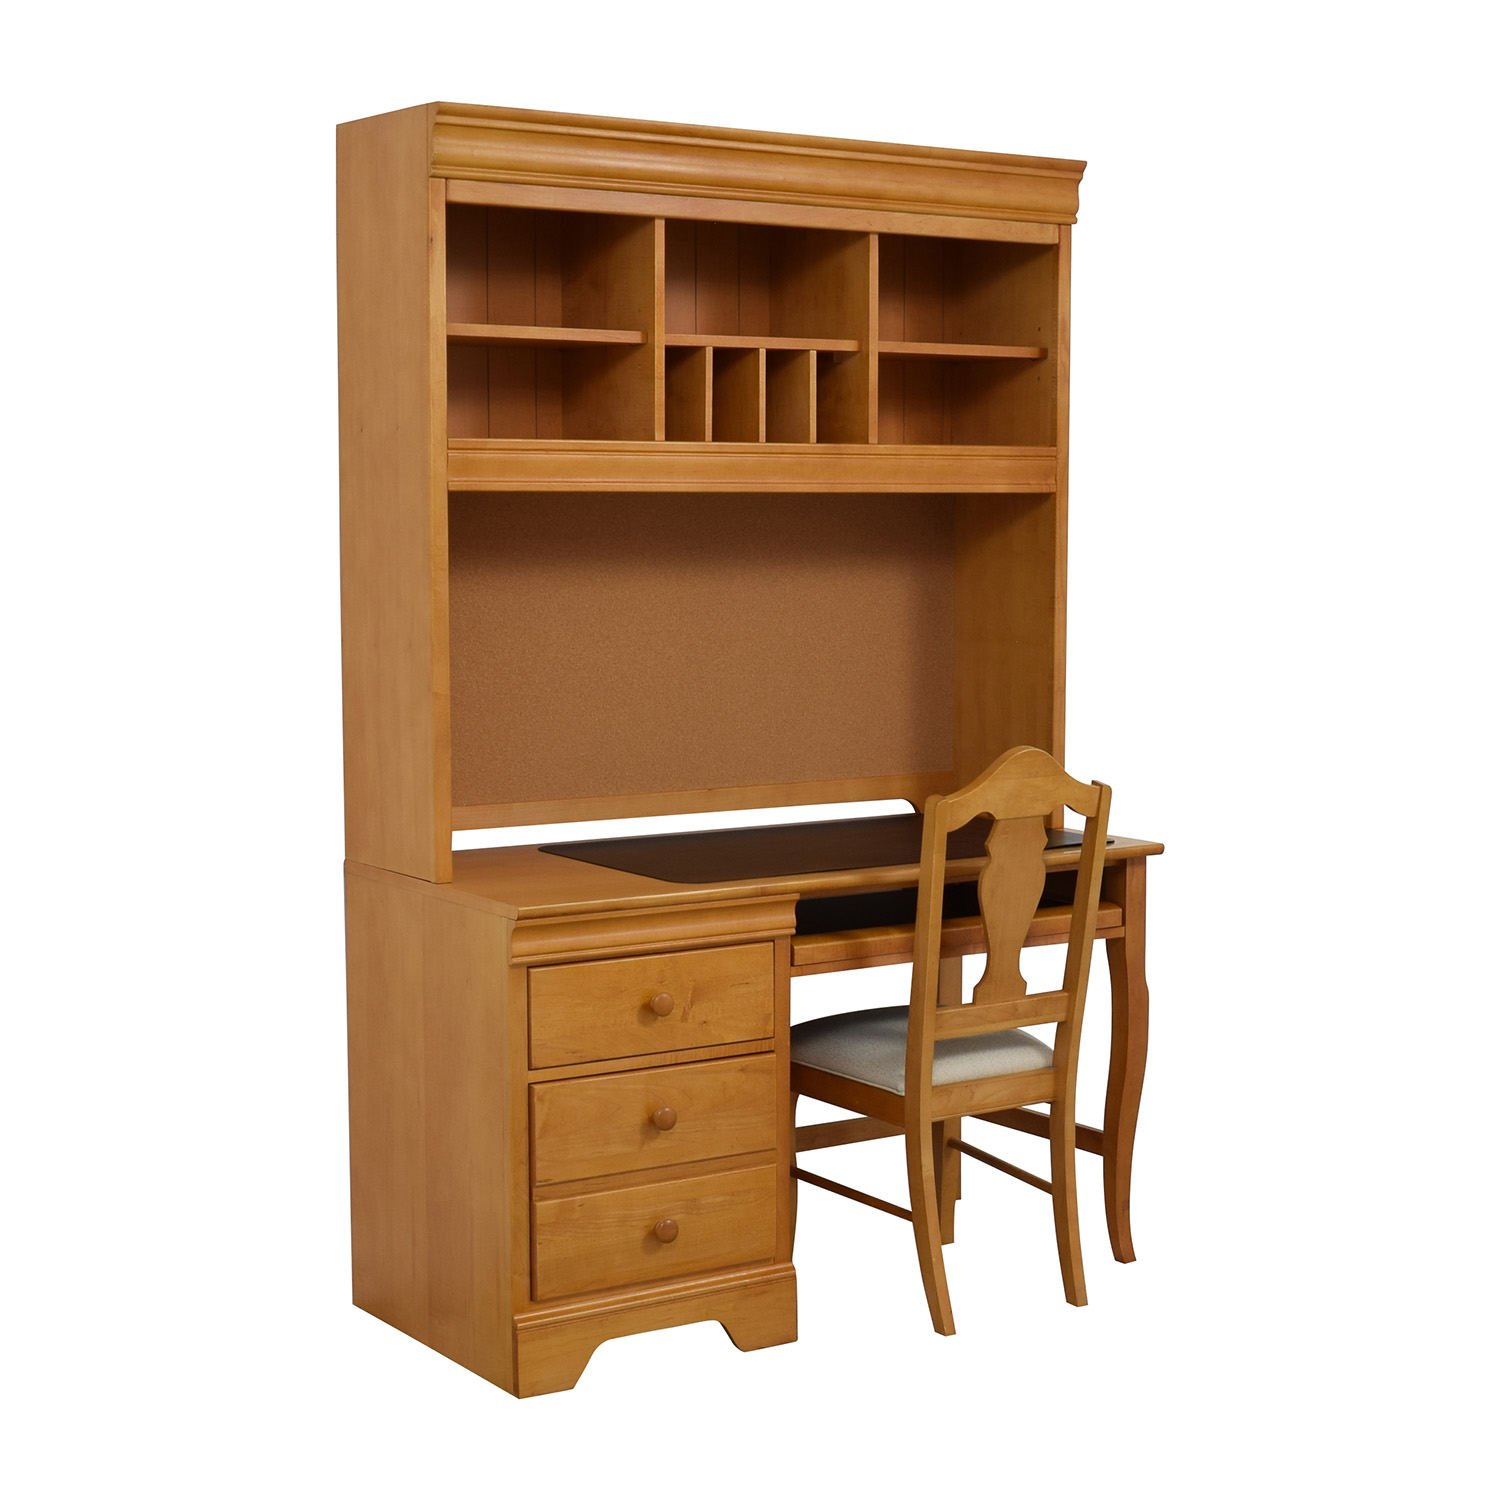 Stanley Furniture Custom Oak Wood Desk With Hutch And Chair